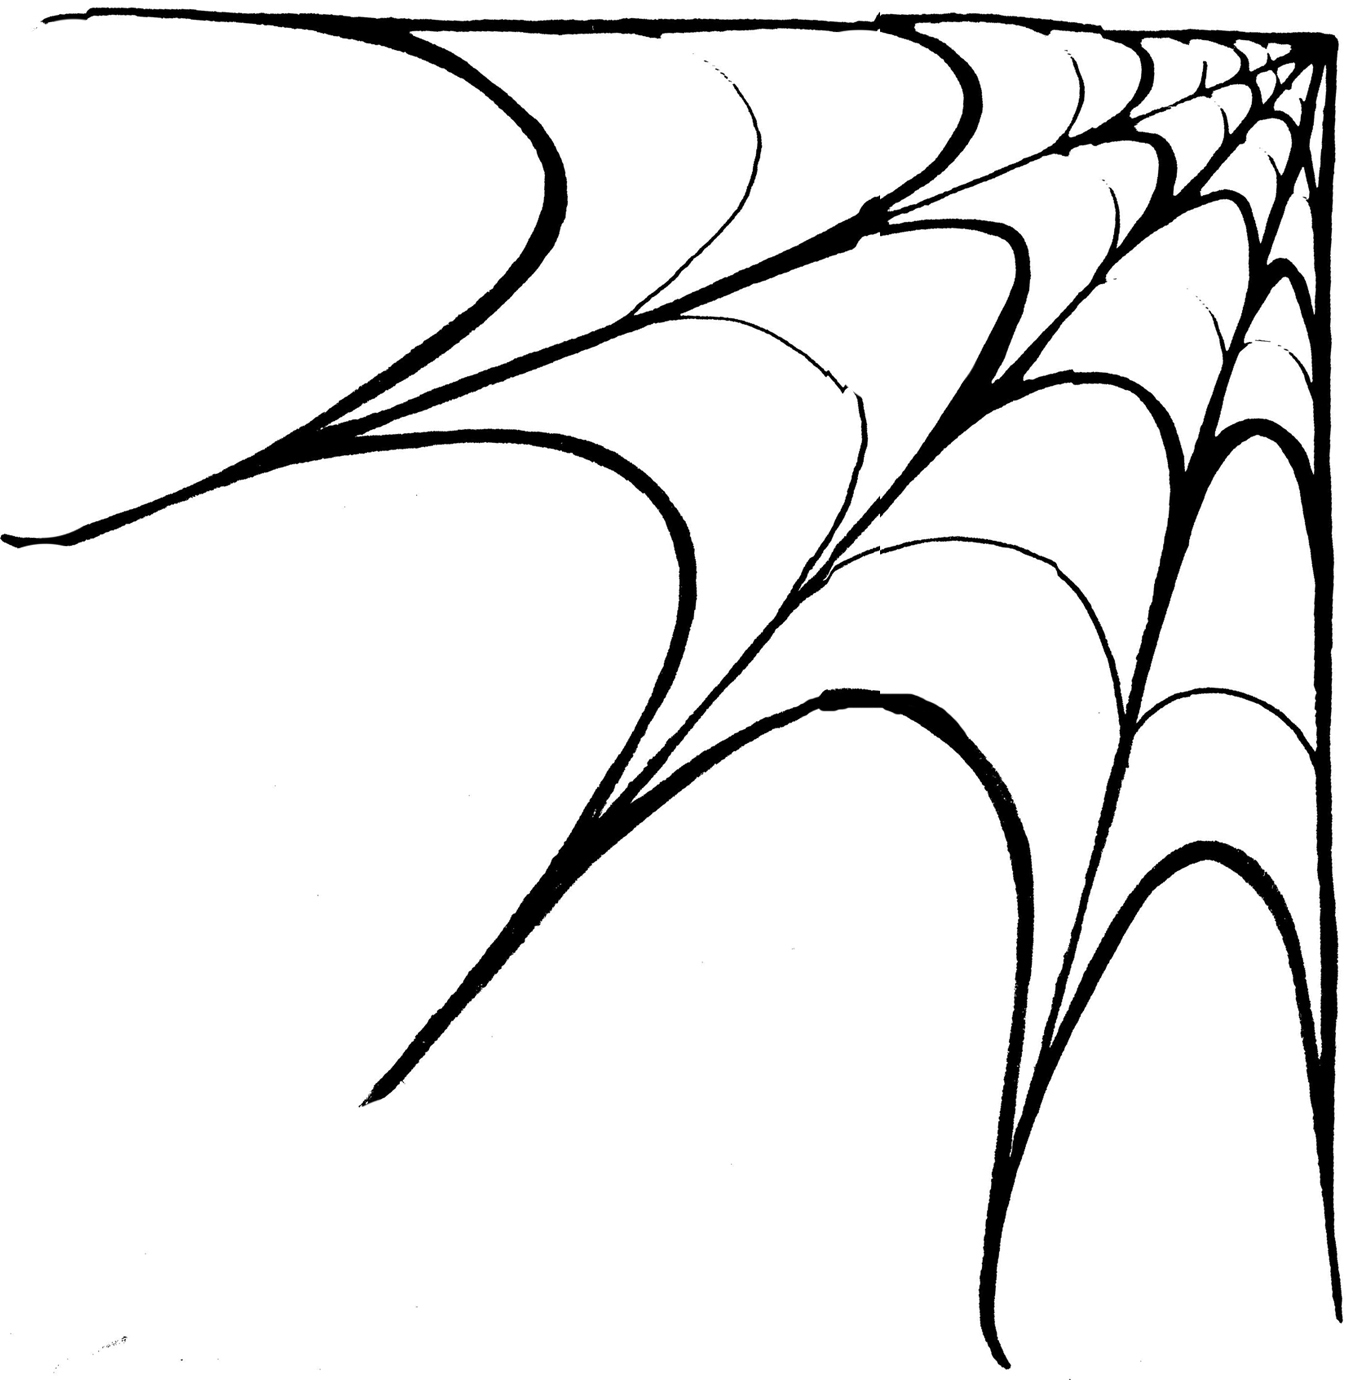 1360x1380 Drawing Of A Spider Web How To Draw A Simple Spider Web